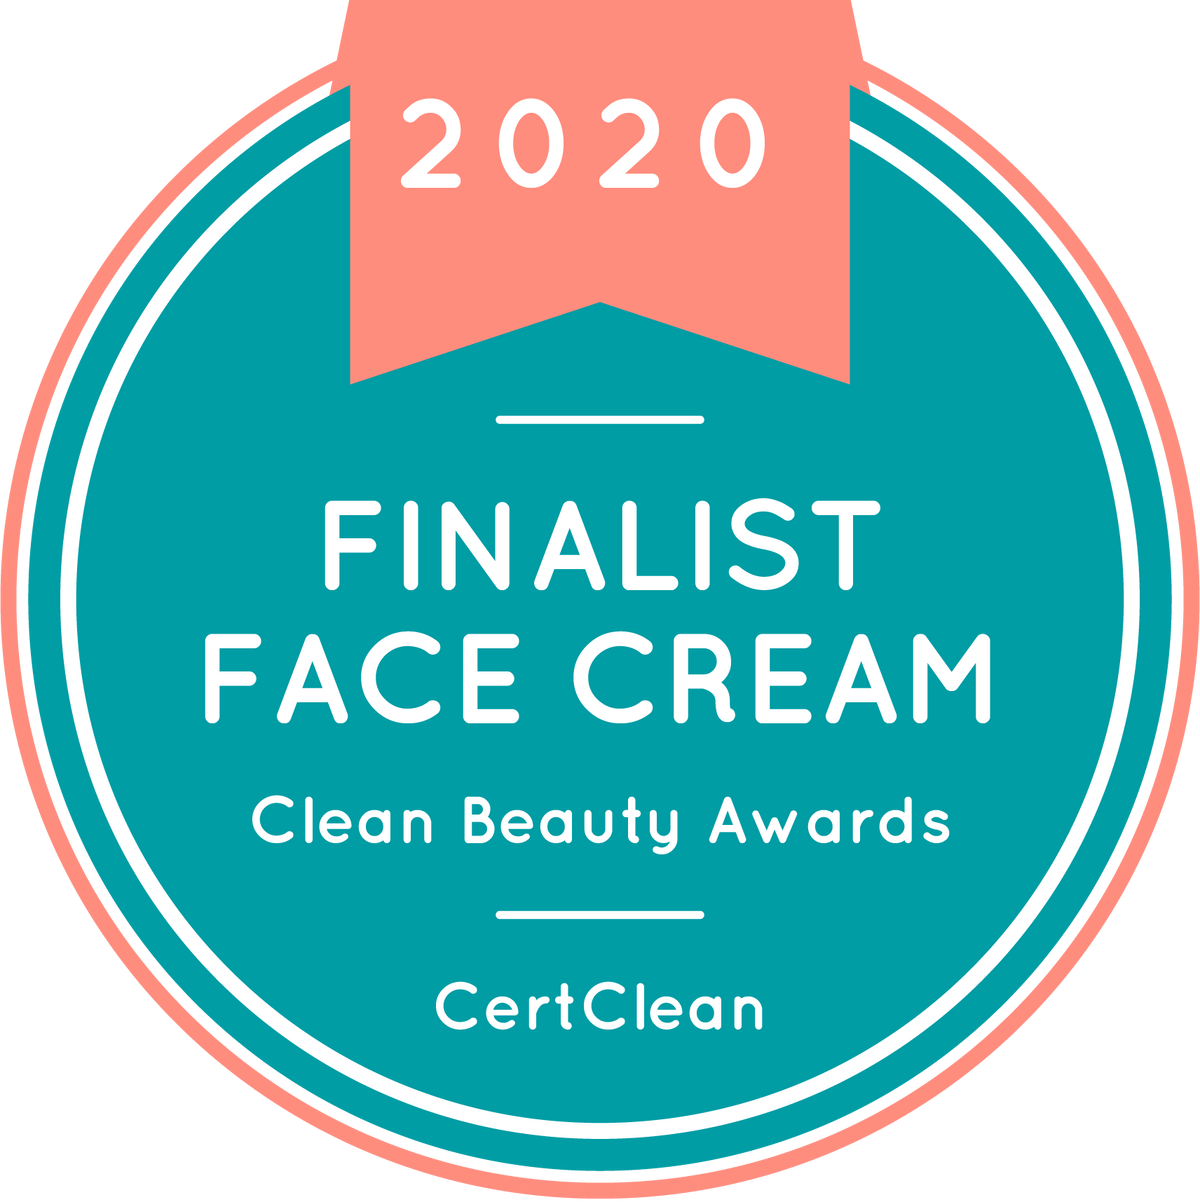 Iremia Skincare's Protective Cream is a Finalist in the 2020 Clean Beauty Awards for Best Face Cream.